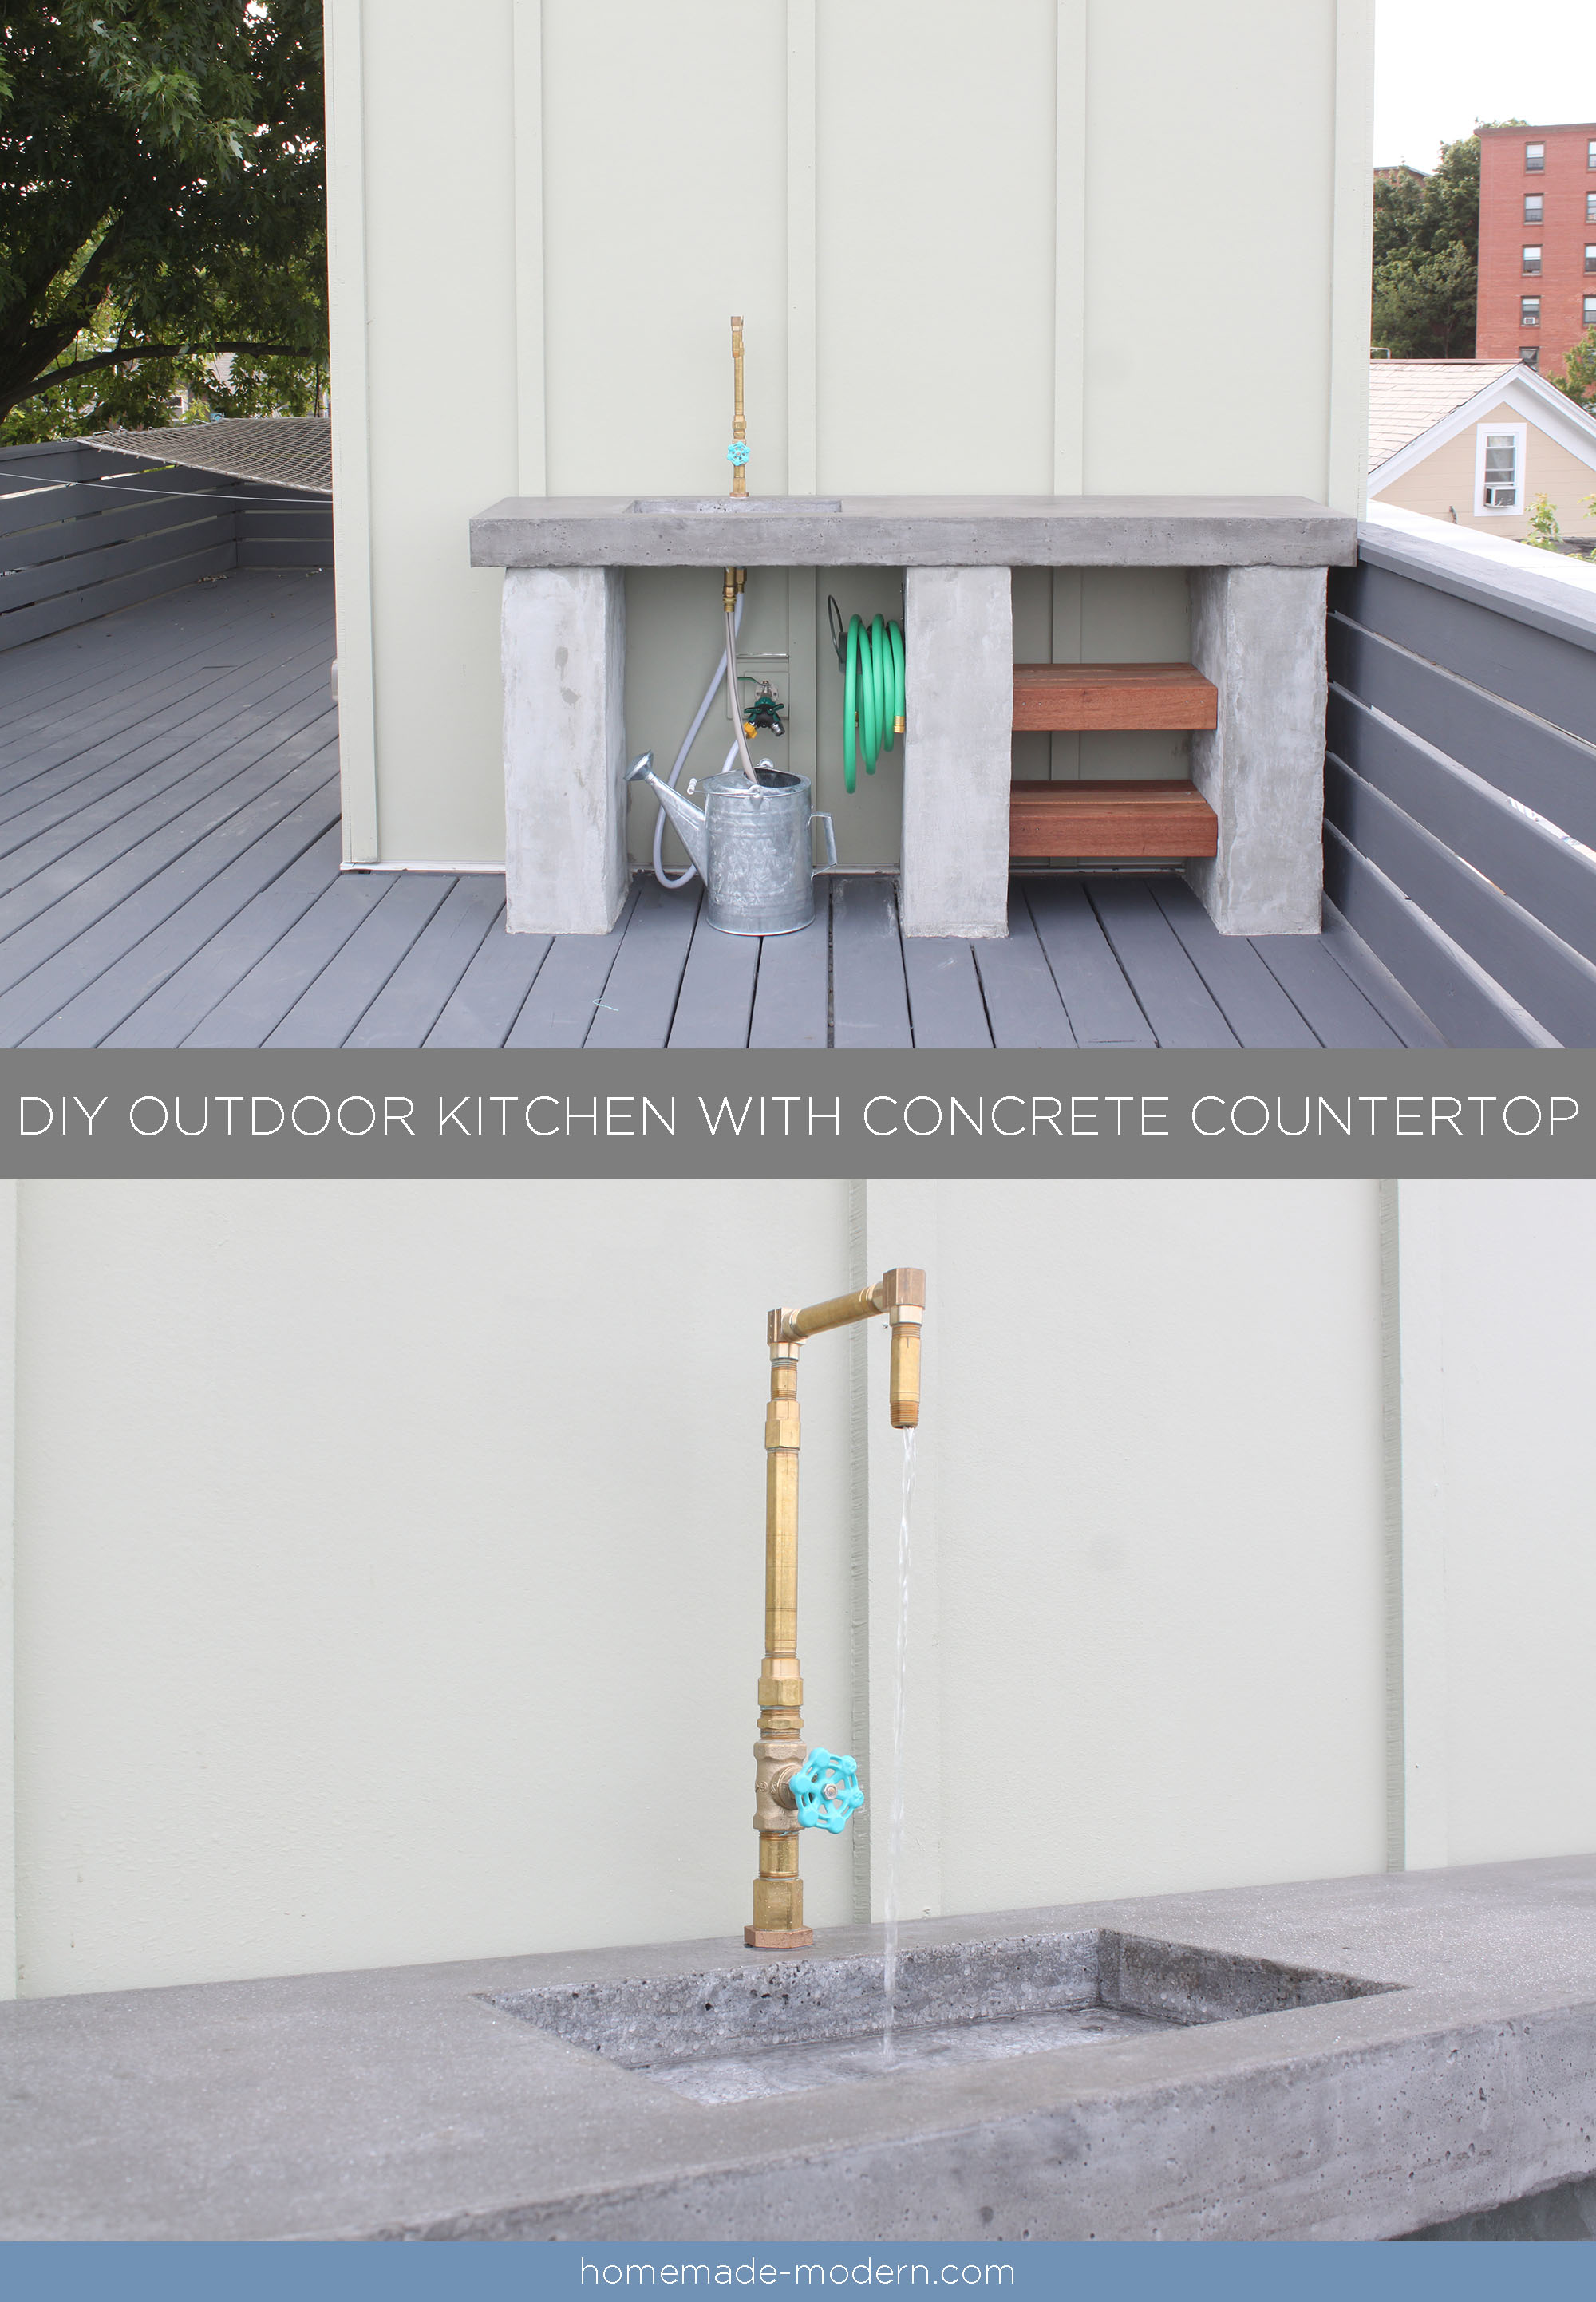 HomeMade Modern EP96 DIY Outdoor Kitchen with Concrete Countertop